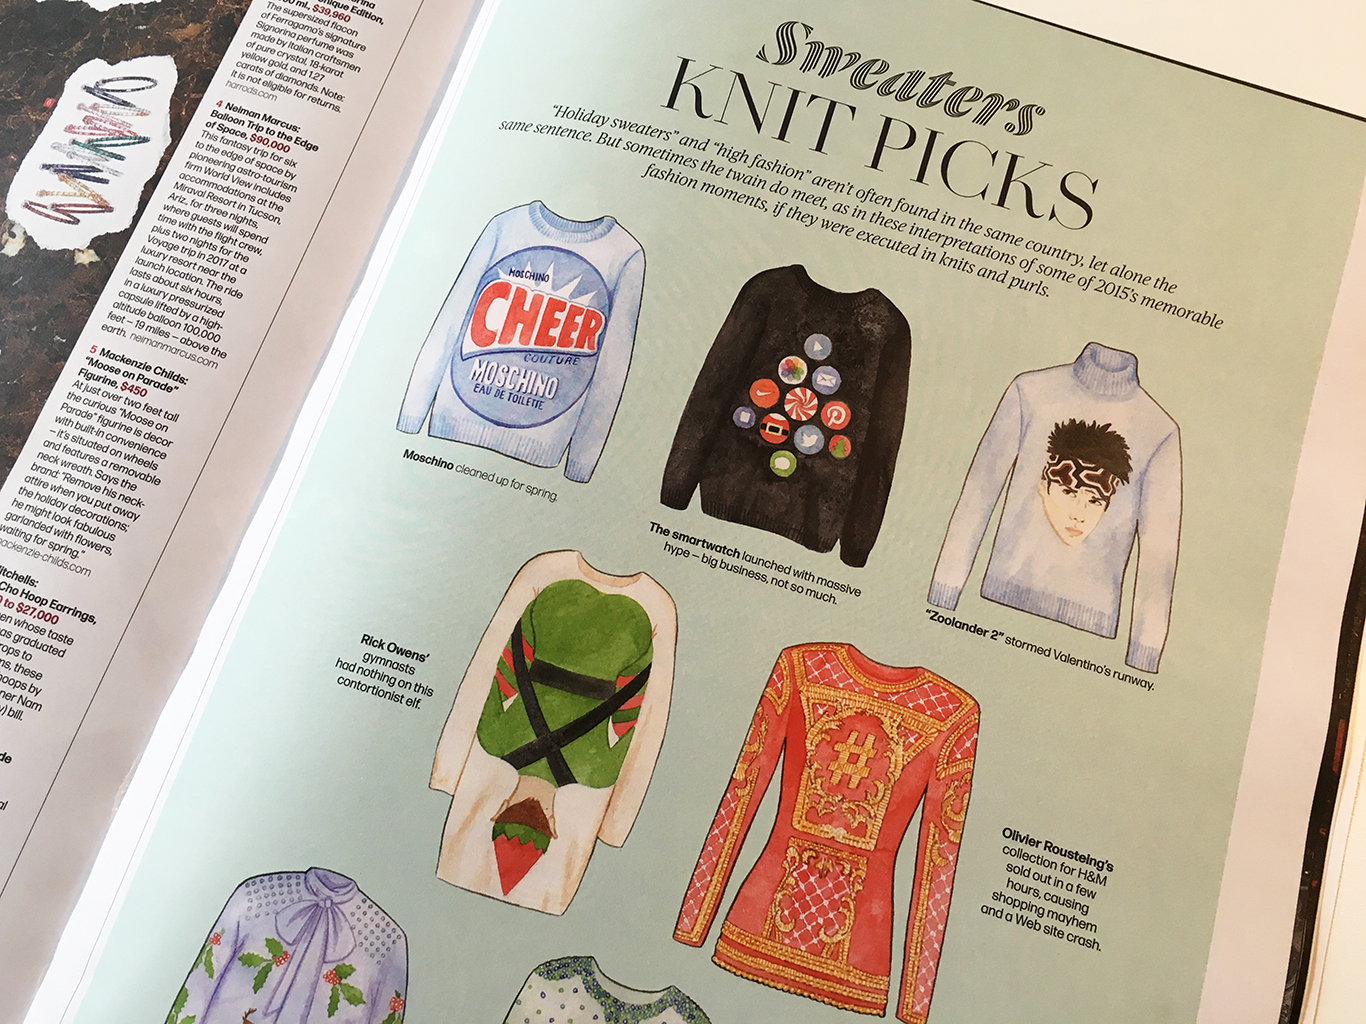 Memorable fashion moments of 2015 as holiday sweaters.Illustration by Megann Stephenson